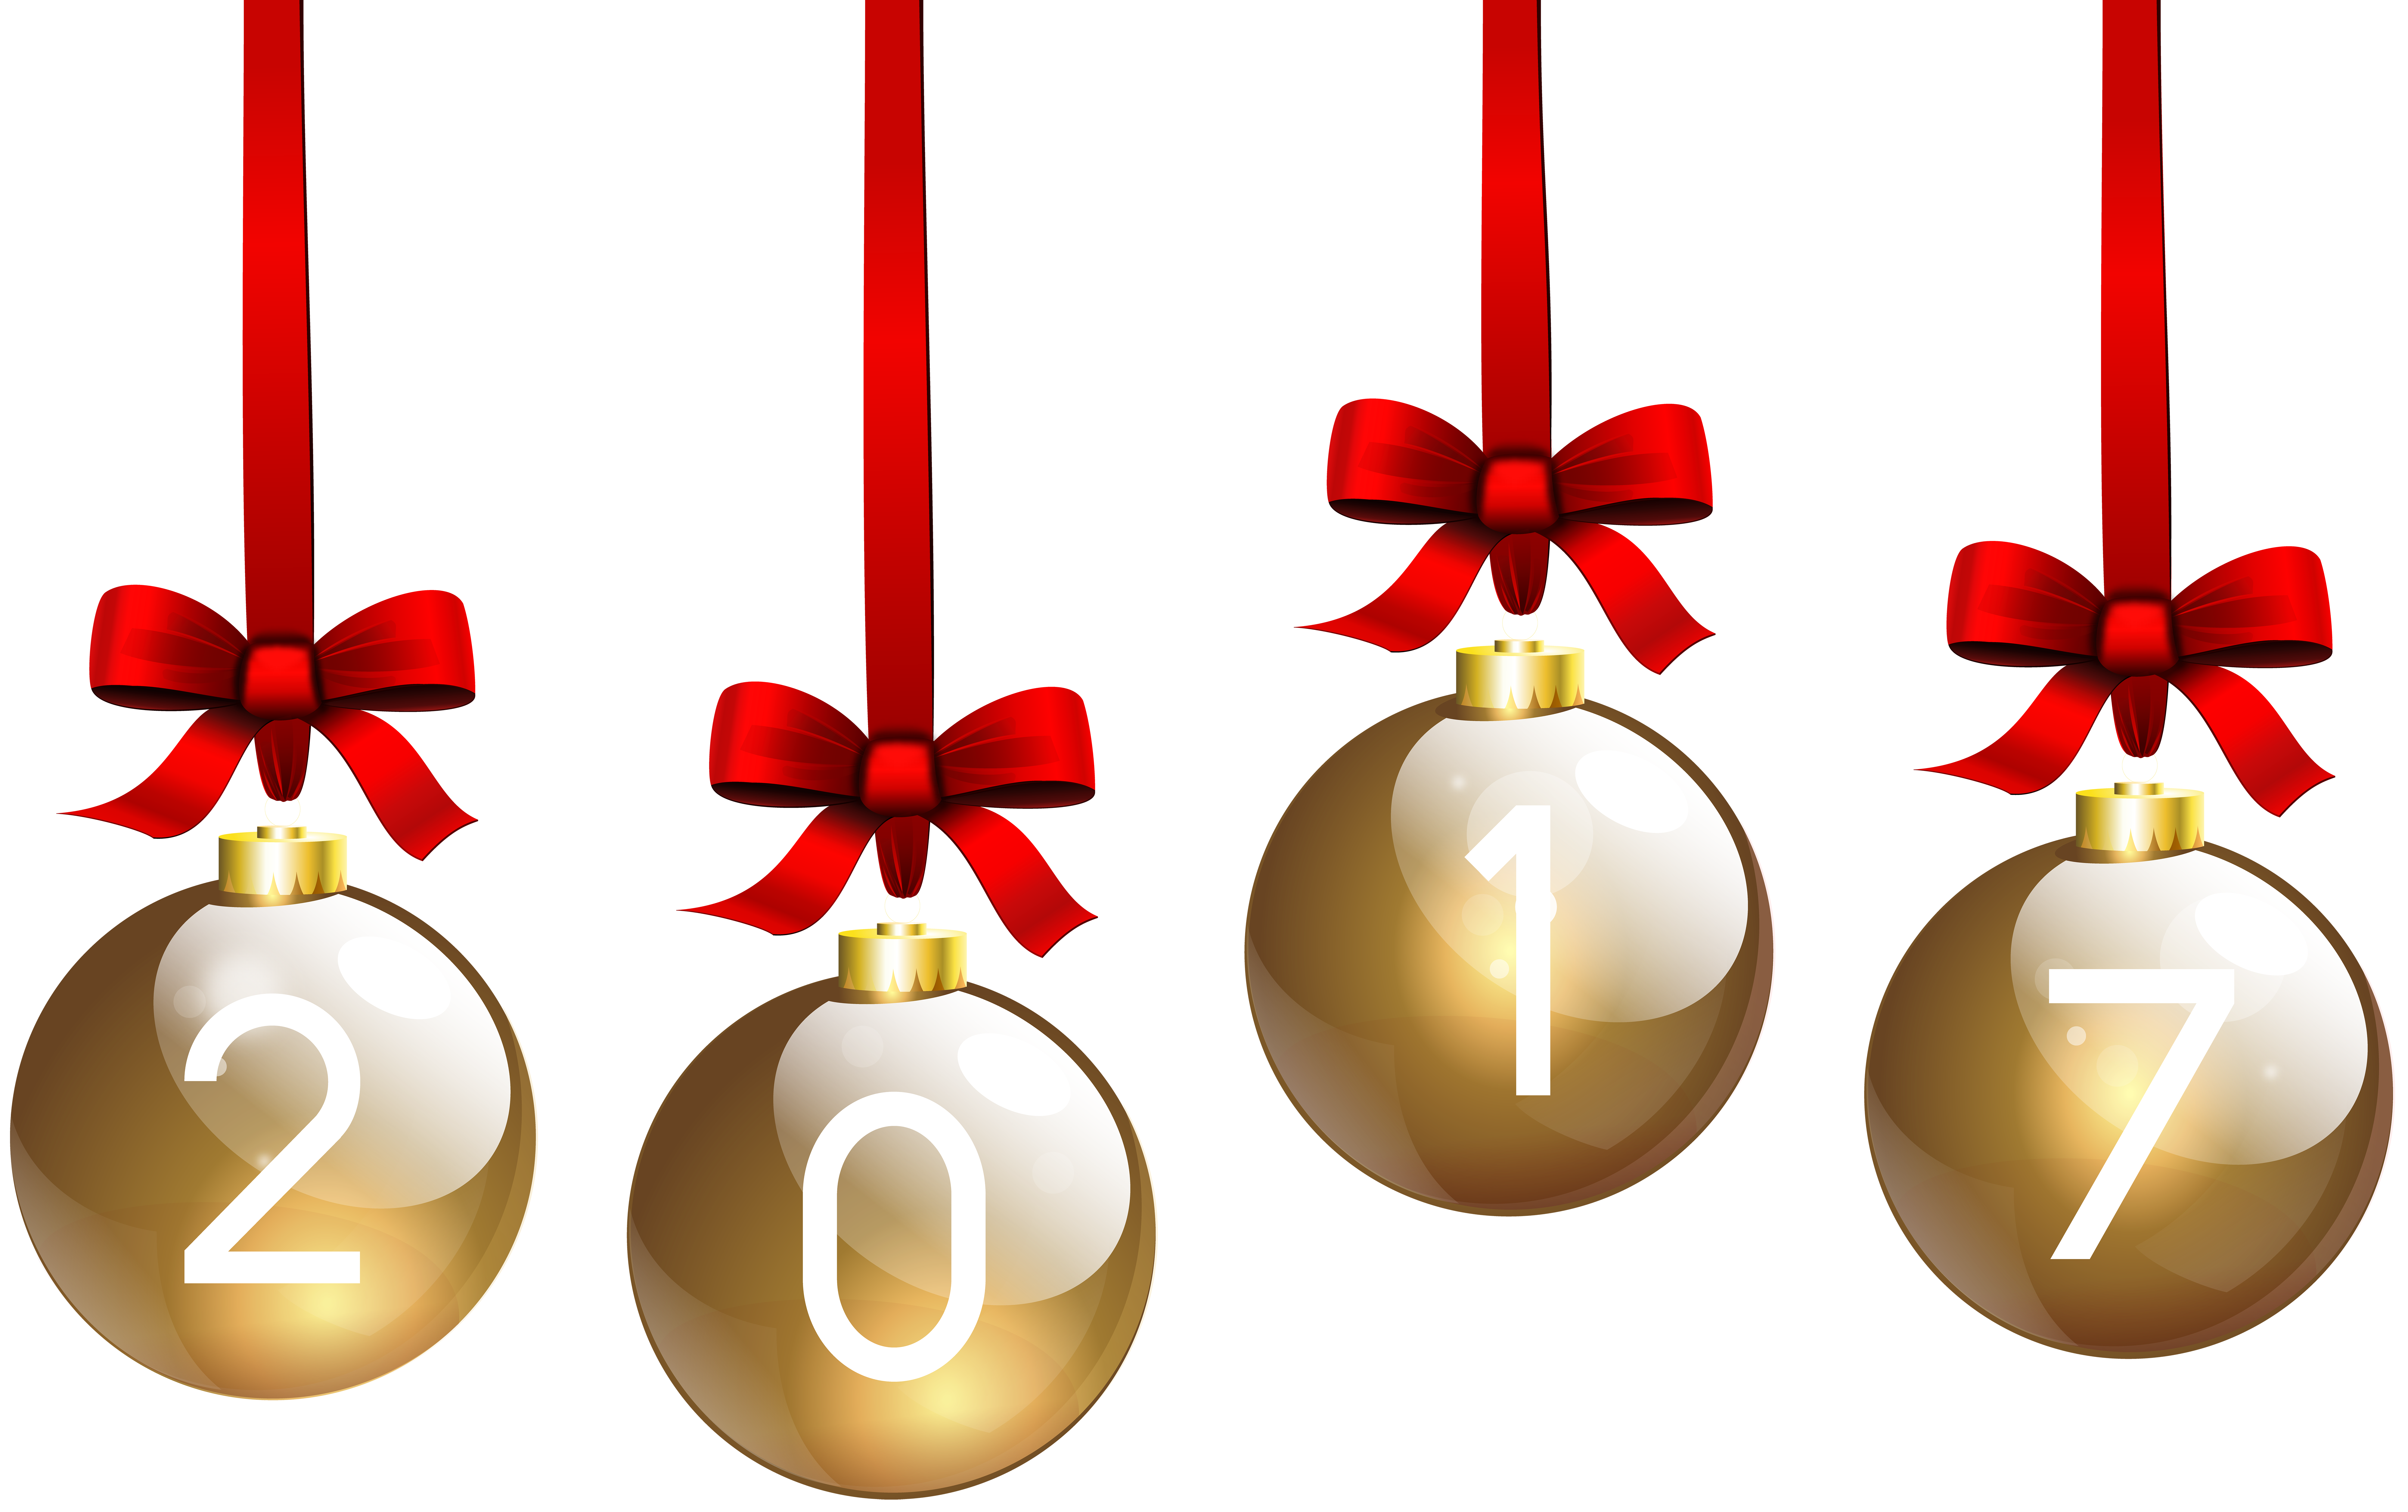 2017 clipart christmas banner free 2017 Christmas Balls Transparent PNG Clip Art | Gallery ... banner free